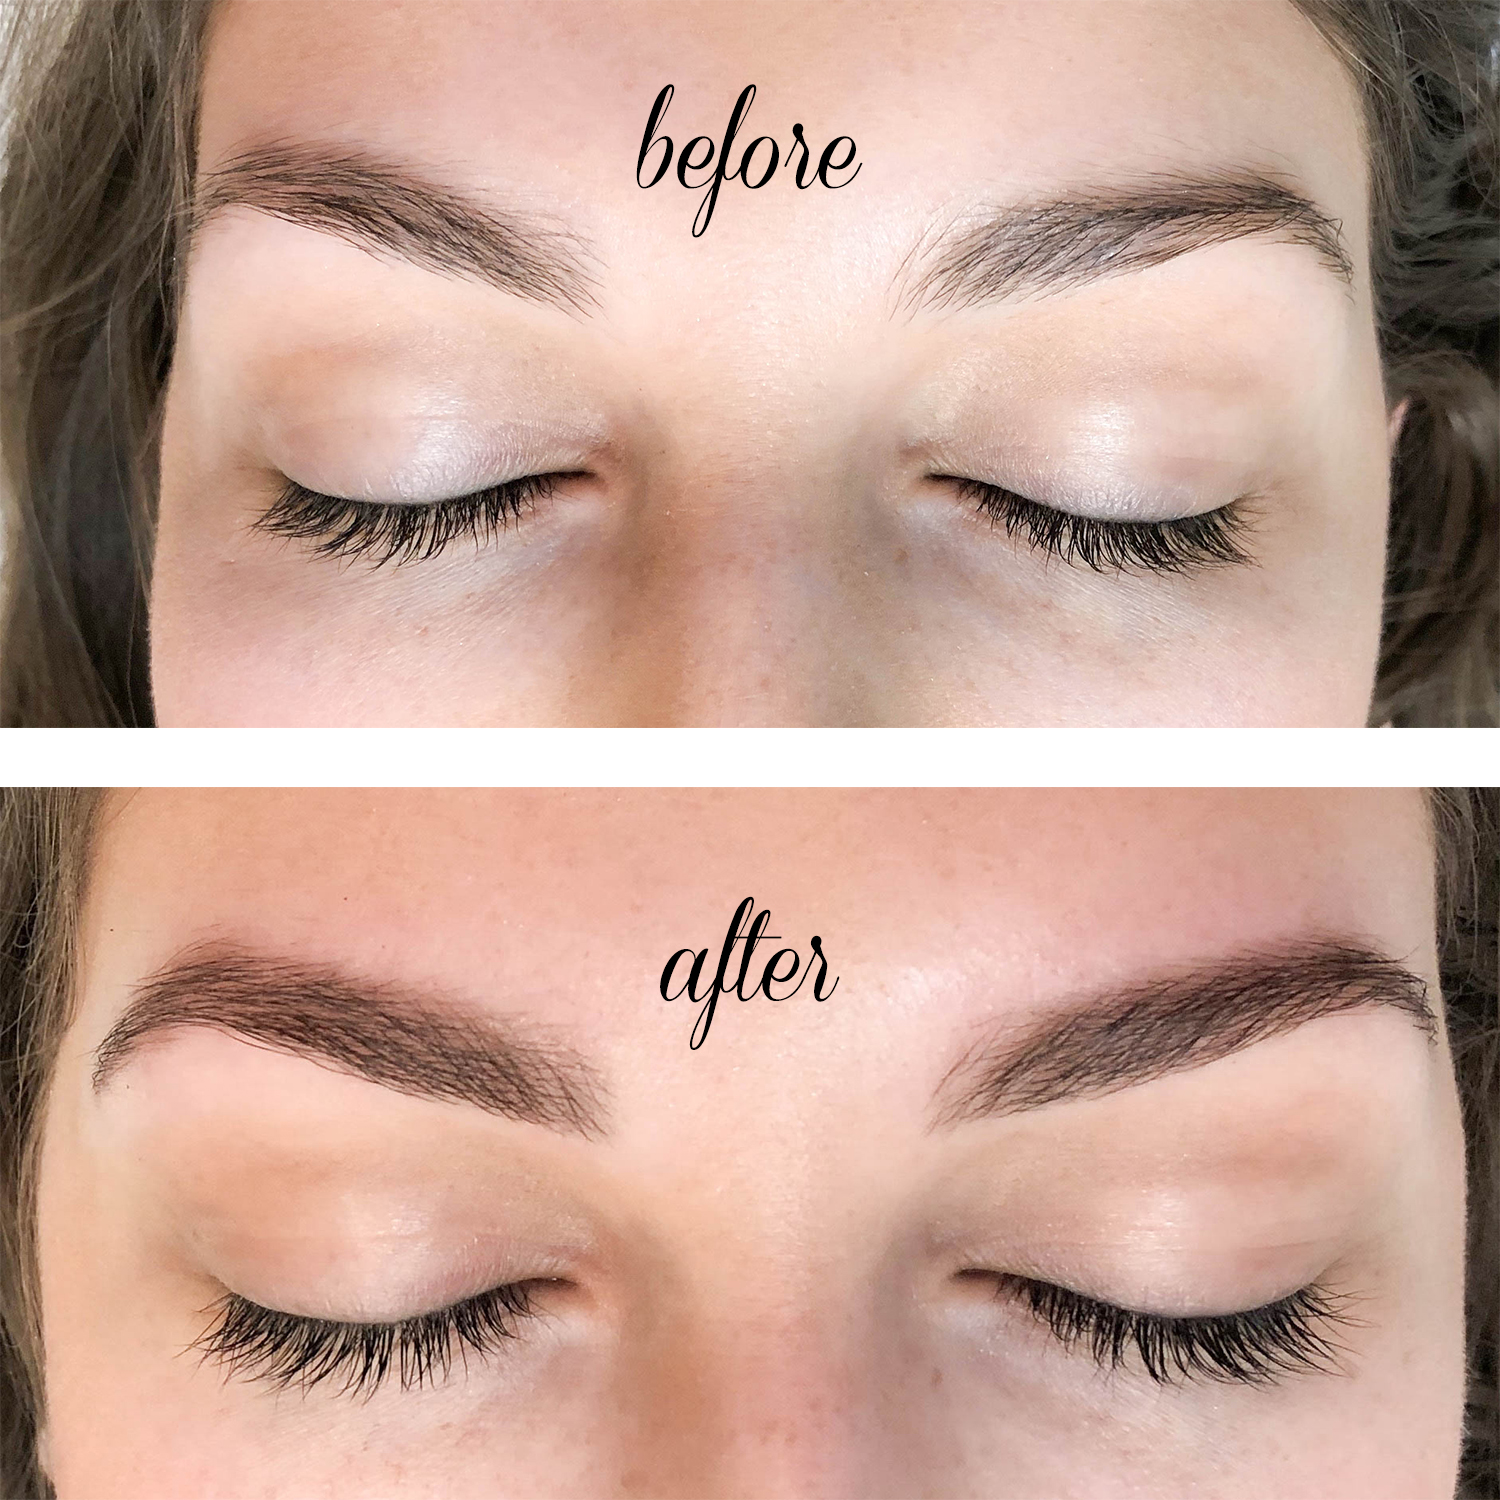 BEFORE & AFTER TINTED BROWS & LASHES FEAT. WAXING THE CITY ...